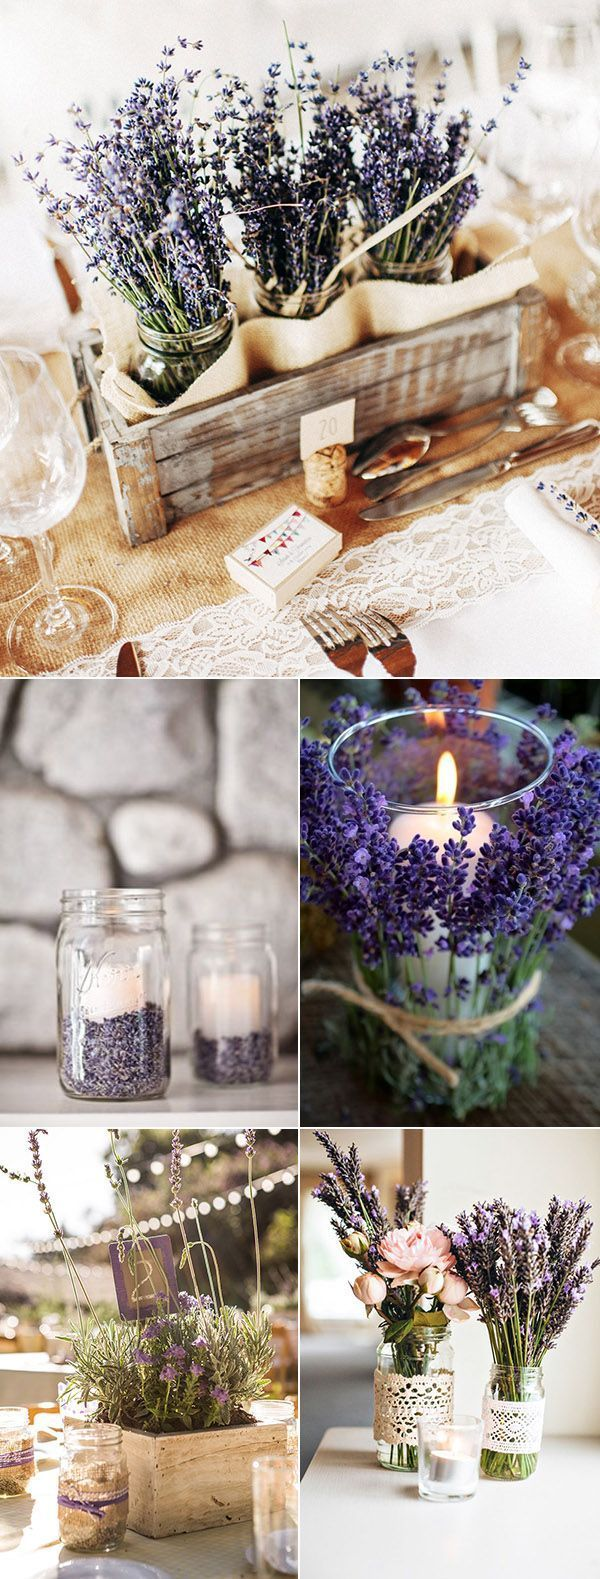 40 Most Charming Lavender Wedding Ideas #engagementpartyideasdecorations